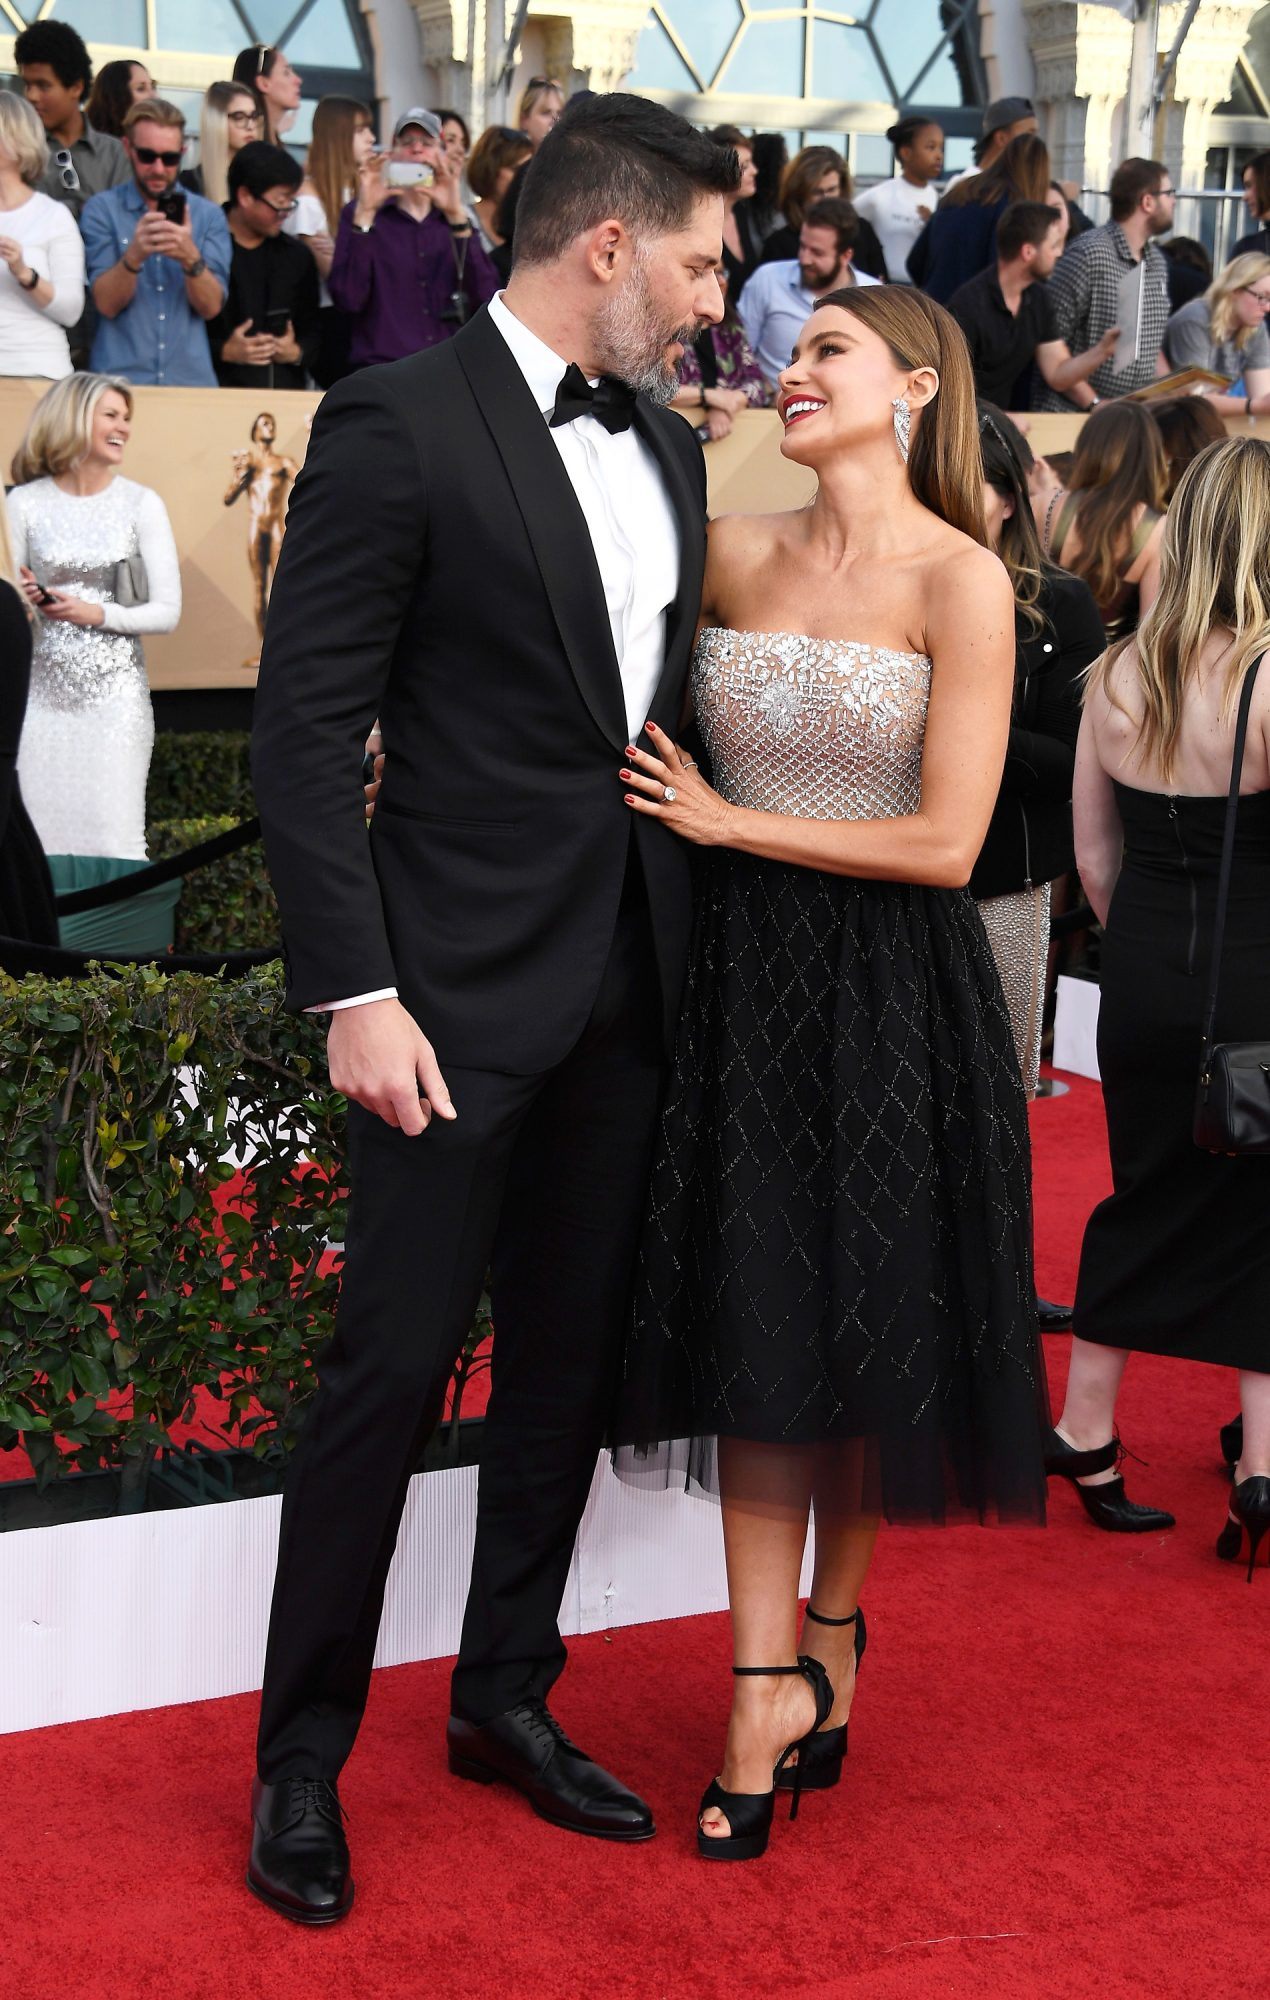 Joe Manganiello and Sofia Vergara Sag Awards 2017